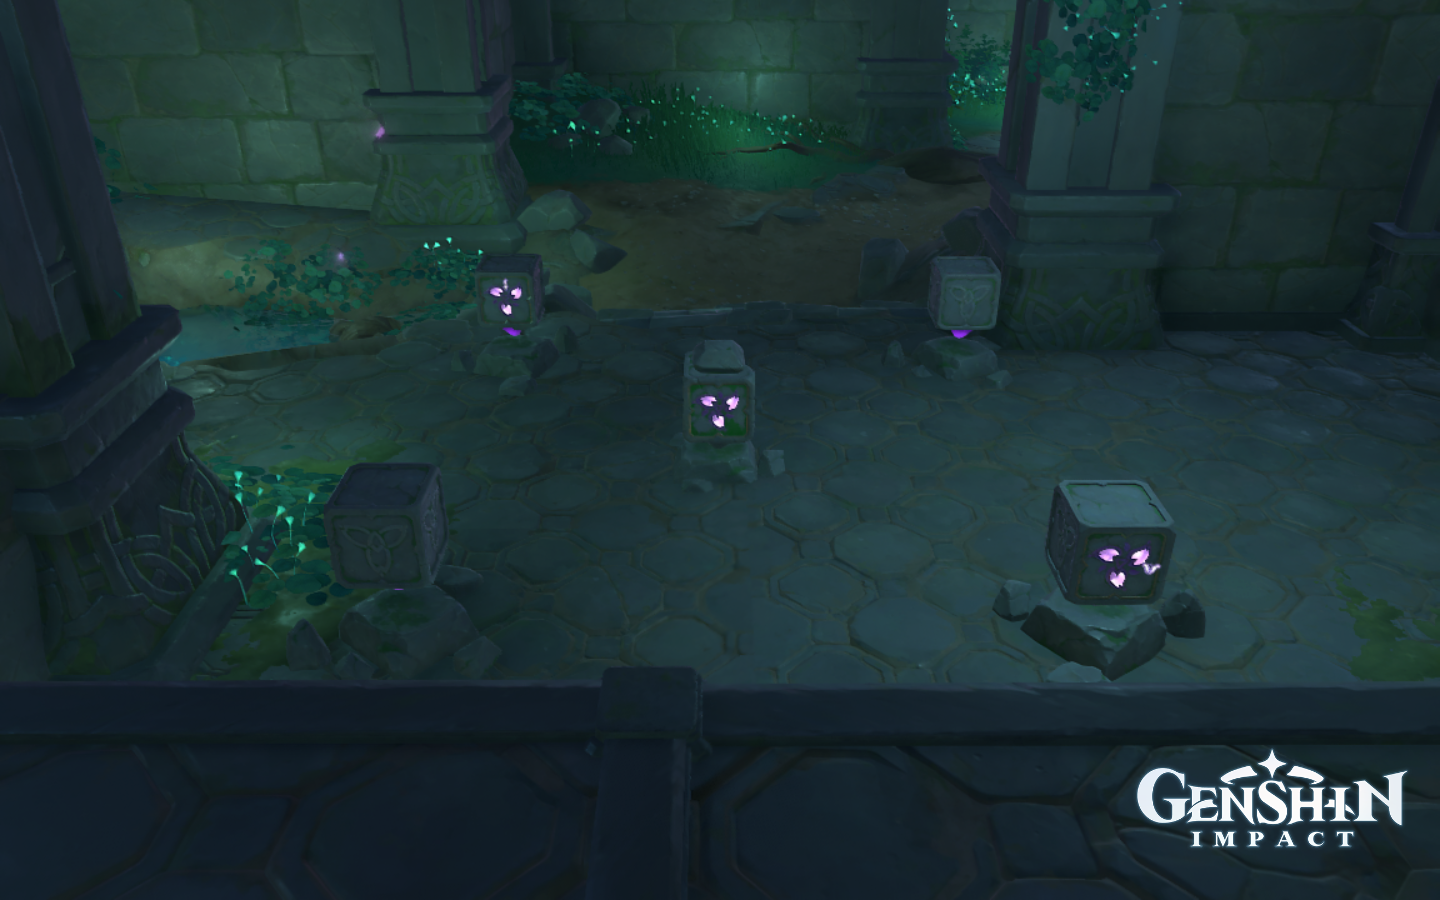 Some cubes with glowing symbols in Genshin Impact